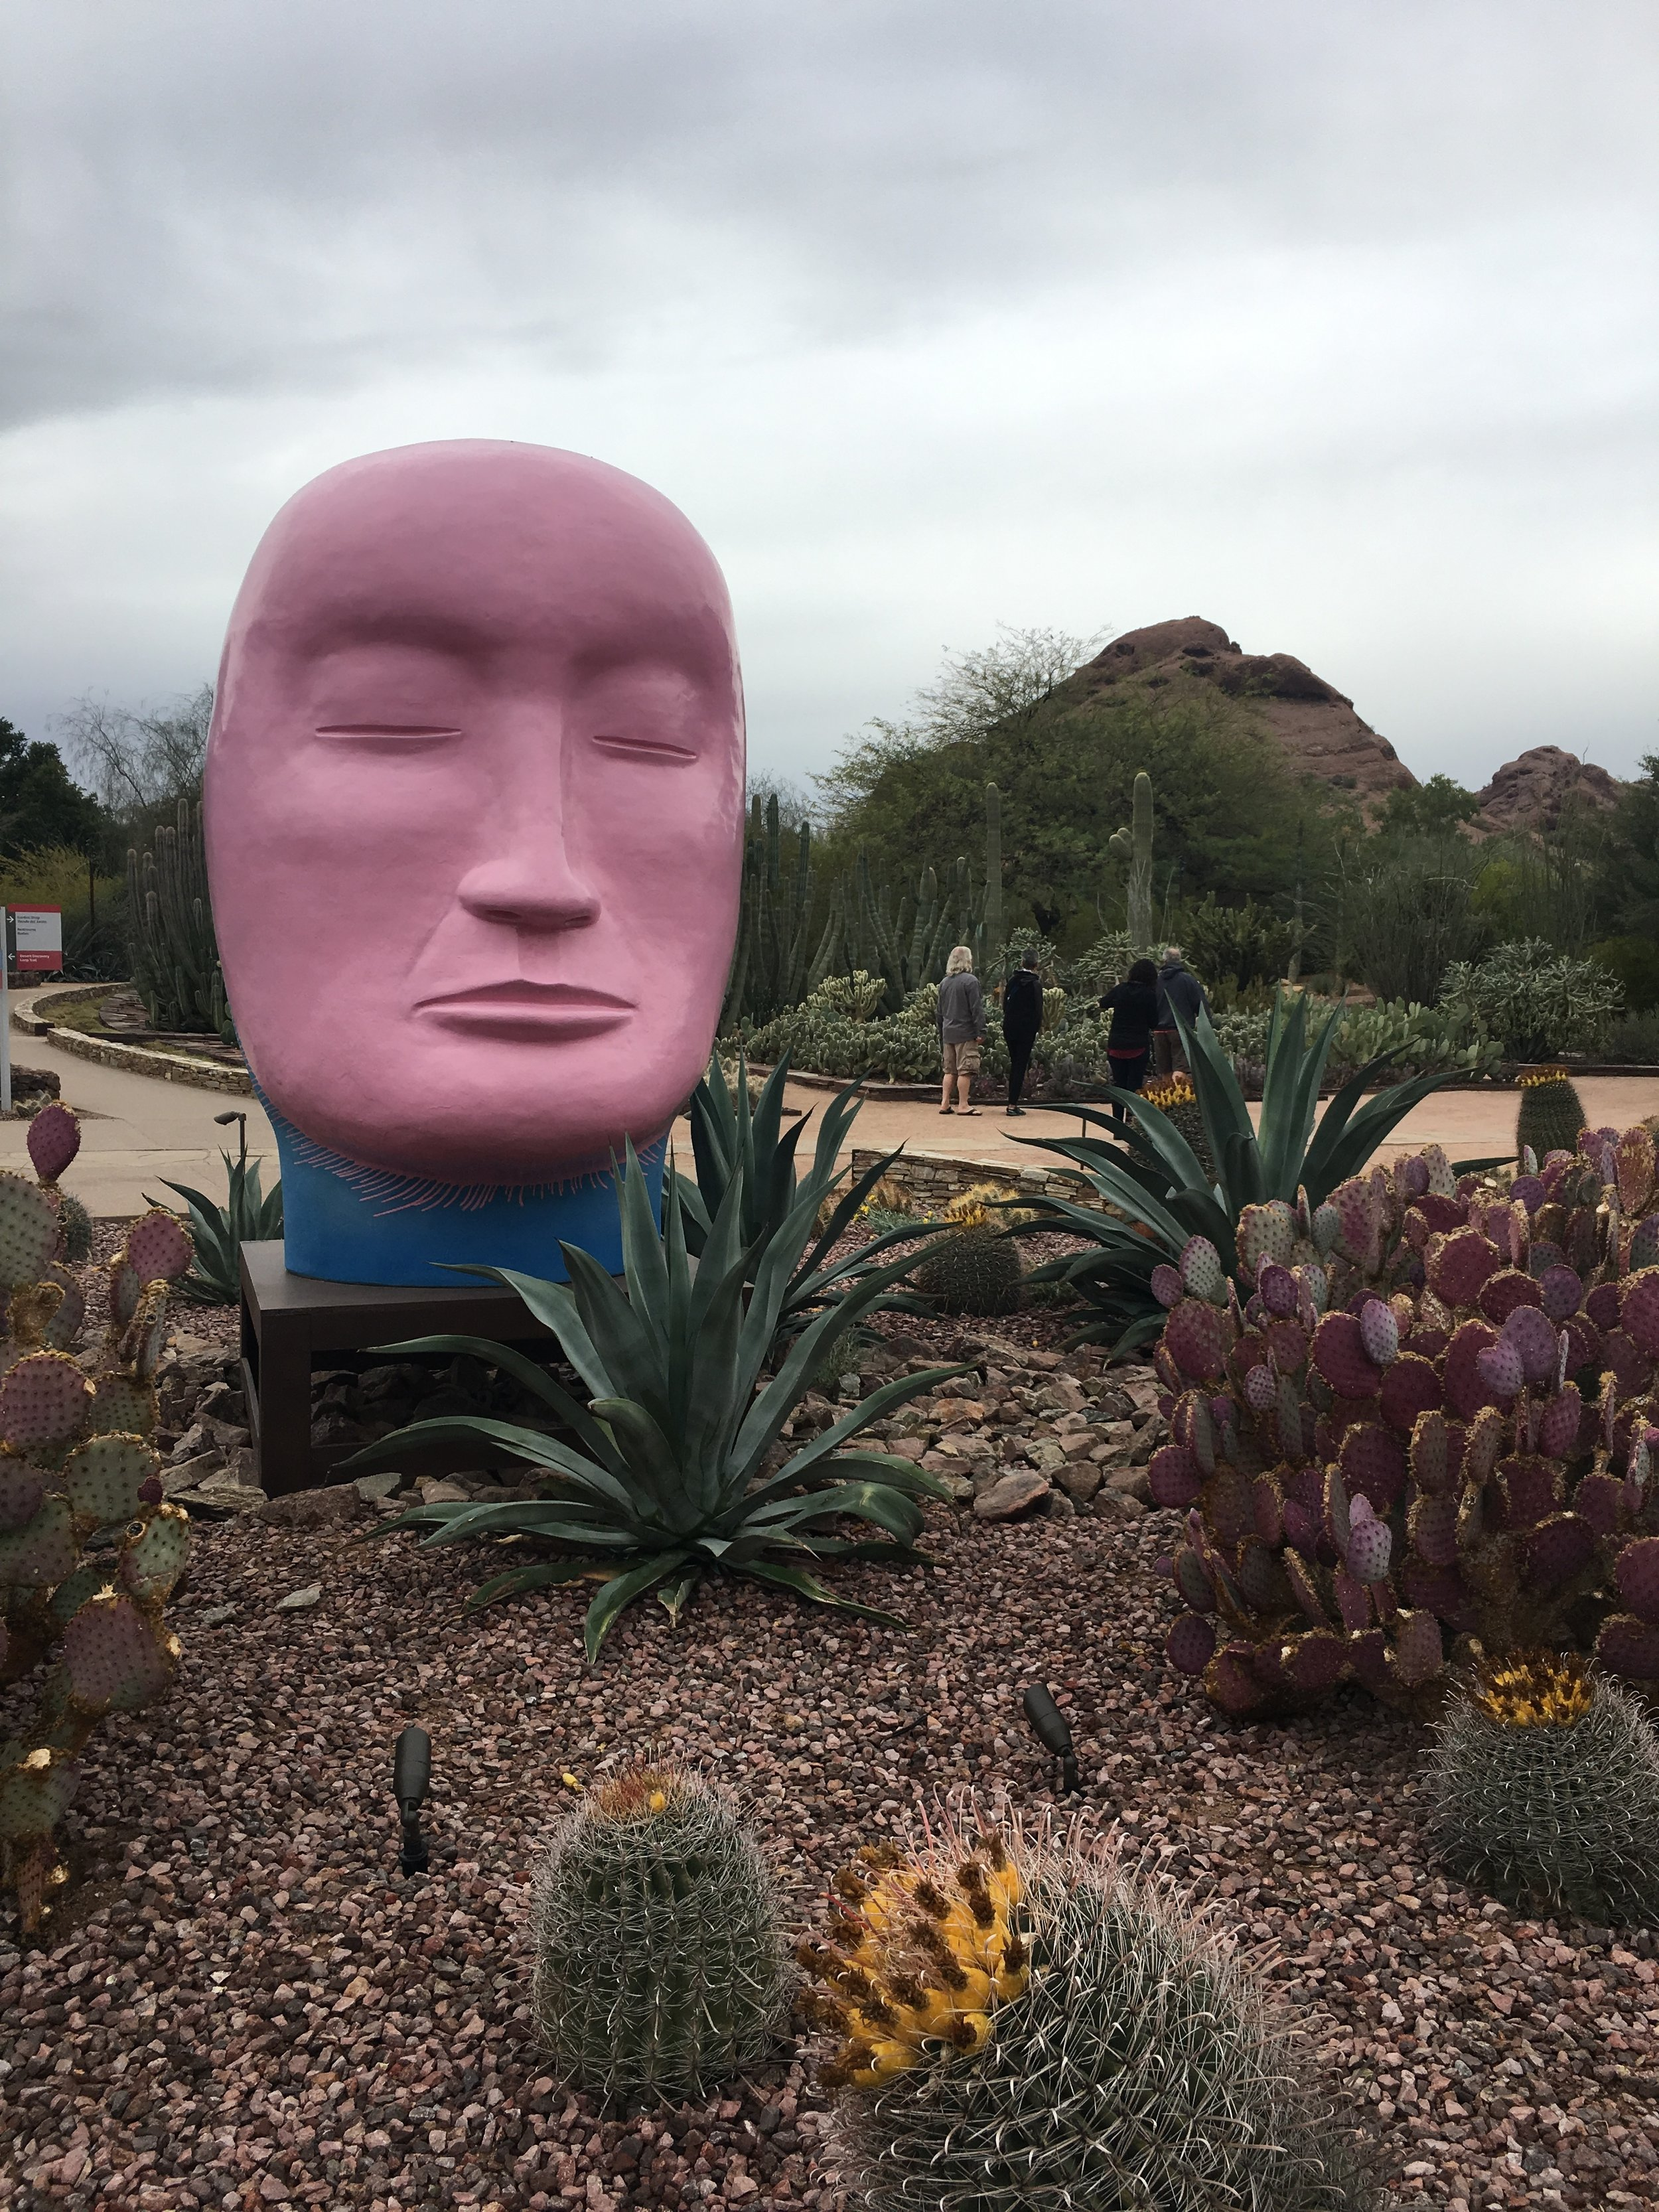 The garden features several head sculptures by Jun Keniko, as well as views of the butte